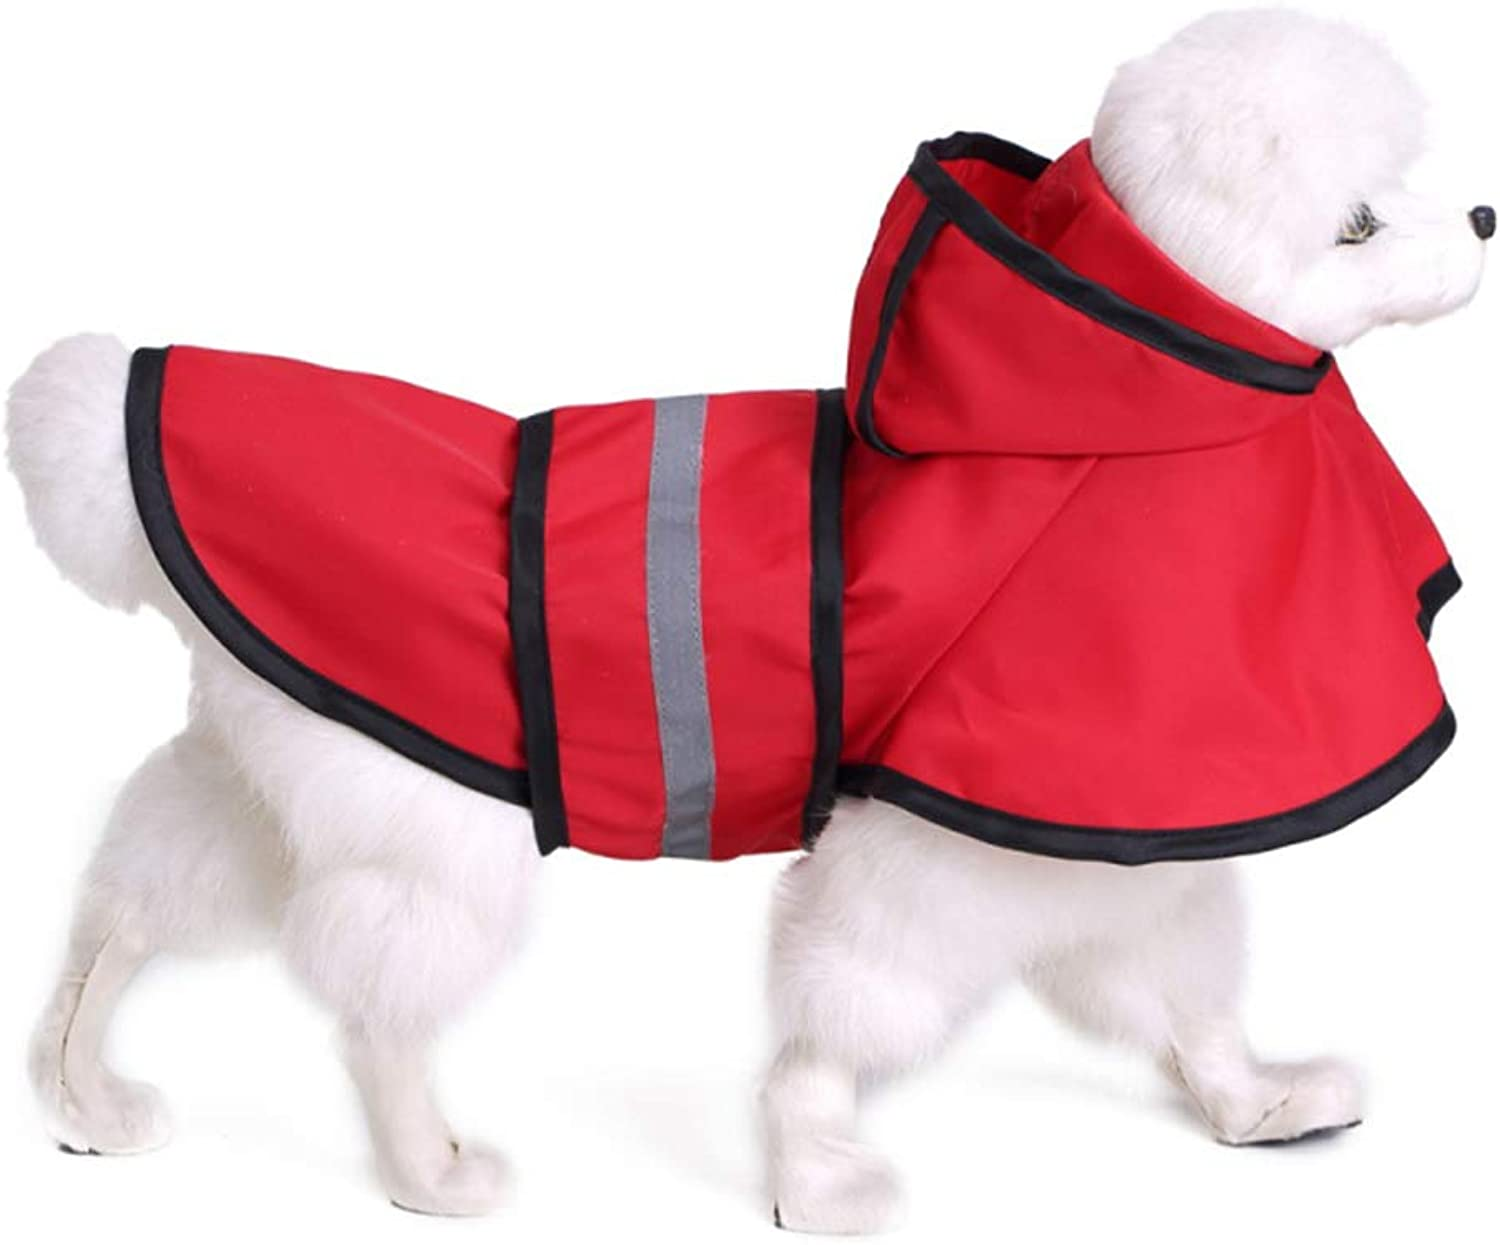 Dog Raincoats Waterproof, Puppy Reflective Casual Waterproof Jacket Poncho, Lightweight Packable Outdoor Dog Hooded Raincoat, for Small Medium Large Dog,XXL